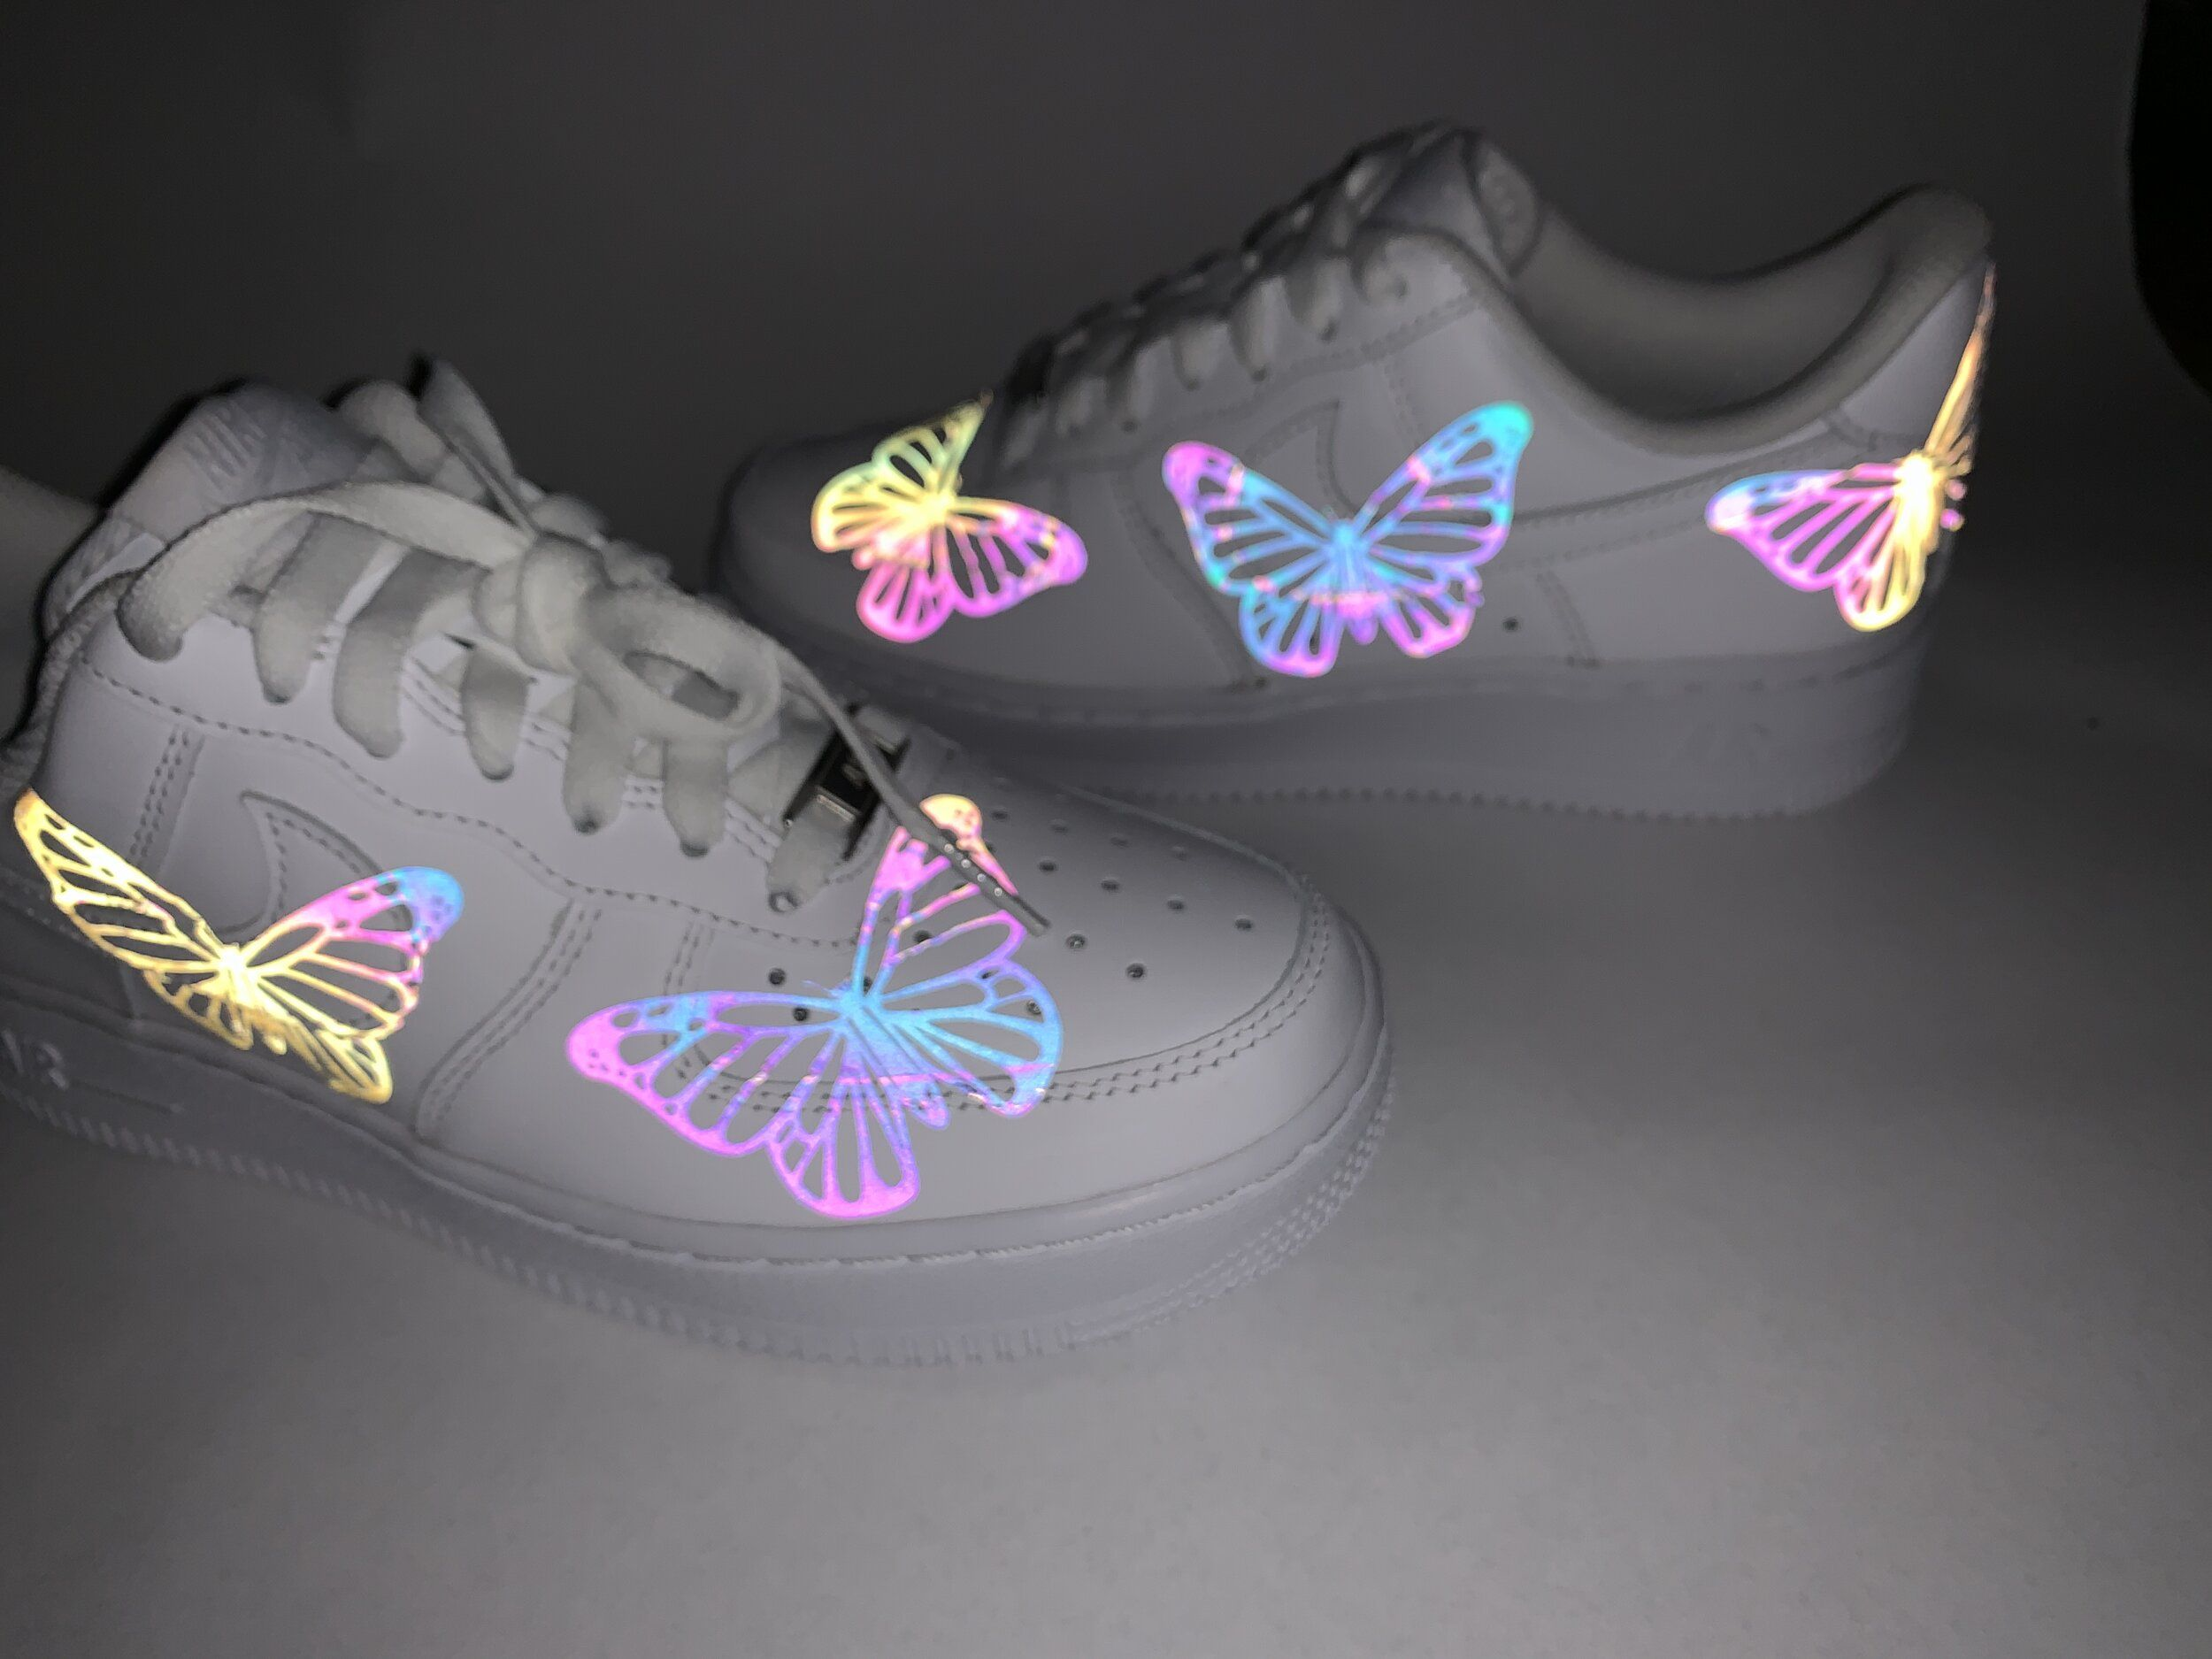 Rainbow Reflective Dior Air Force 1's in 2020 Nike shoes